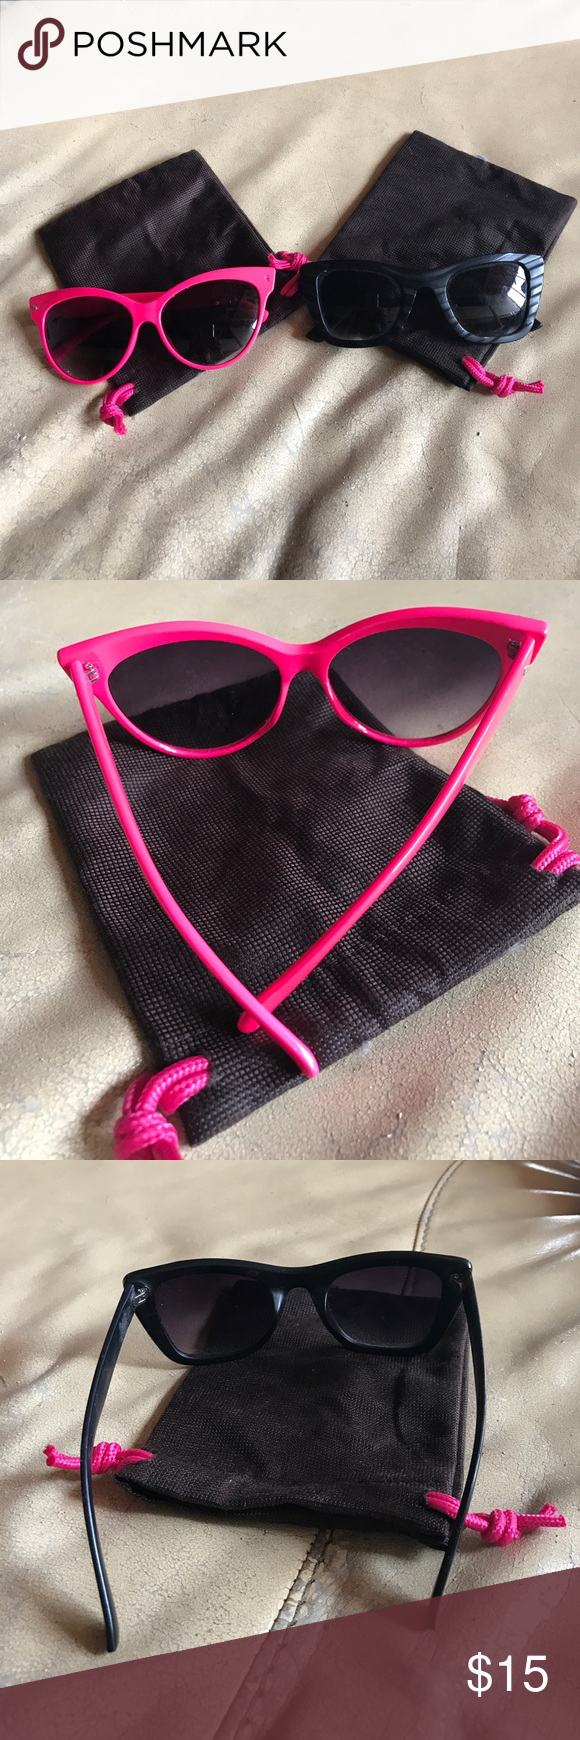 Fashion sunglass bundle Pink and Black💗Cat eye and Semi cat eye frames. Plastic, funky, strong... Show your style. Fashion Accessories Sunglasses